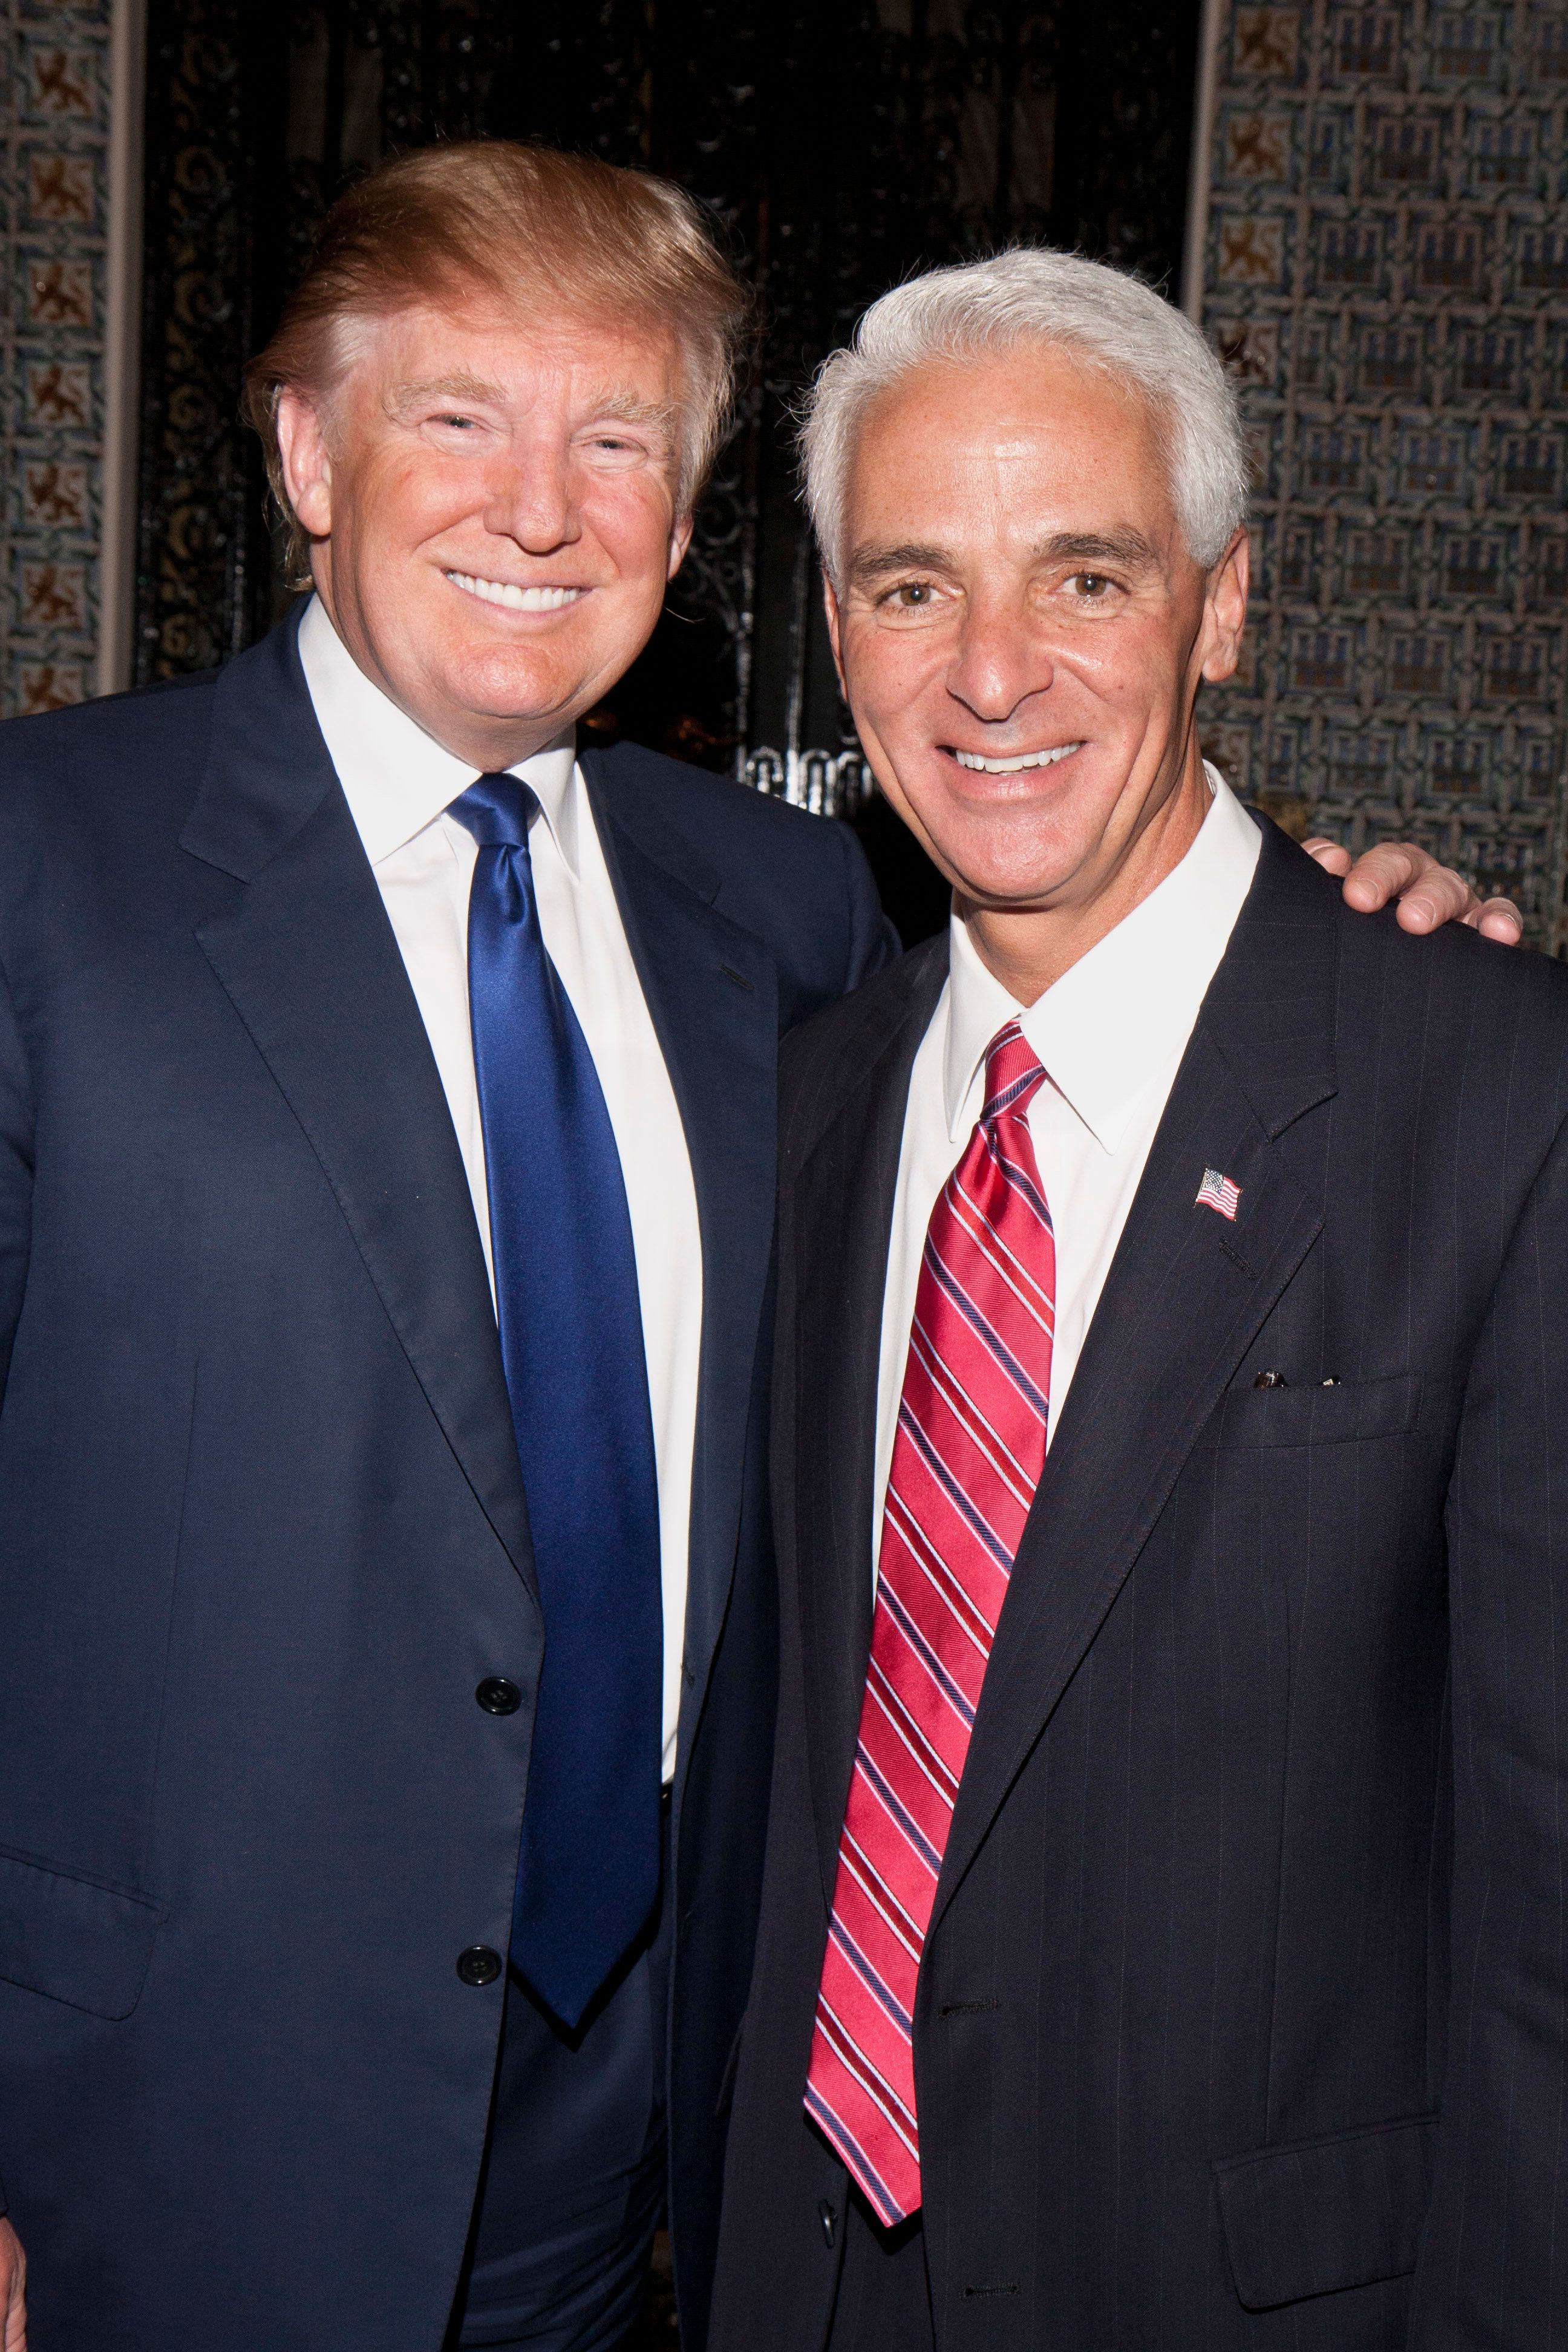 December 12, 2009 December 12, 2009 DONALD TRUMP AND GOVERNOR CHARLIE CRIST Attend Glitz Charity Gala. The March of Dimes Glitz Gala was held at Mar-a-Lago. (Photo by Michele Eve Sandberg/Corbis via Getty Images)